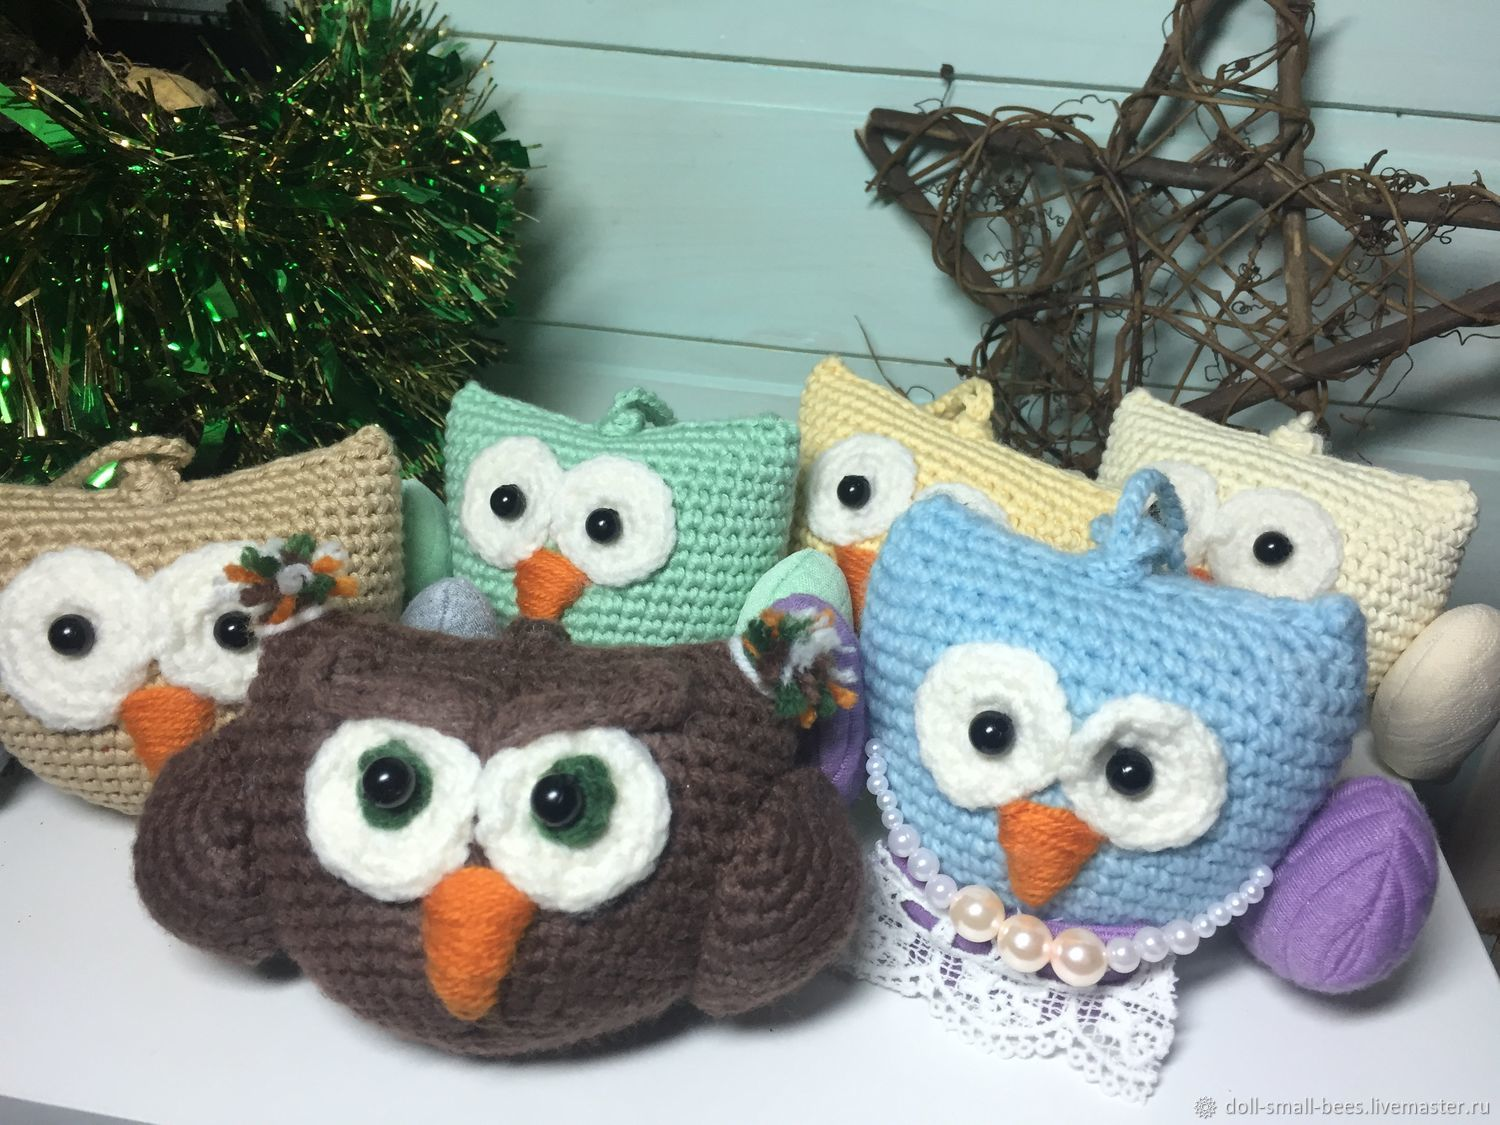 A set of knitted Christmas decorations Sowosky custom made ! Good Christmas gift for family, friends and colleagues!